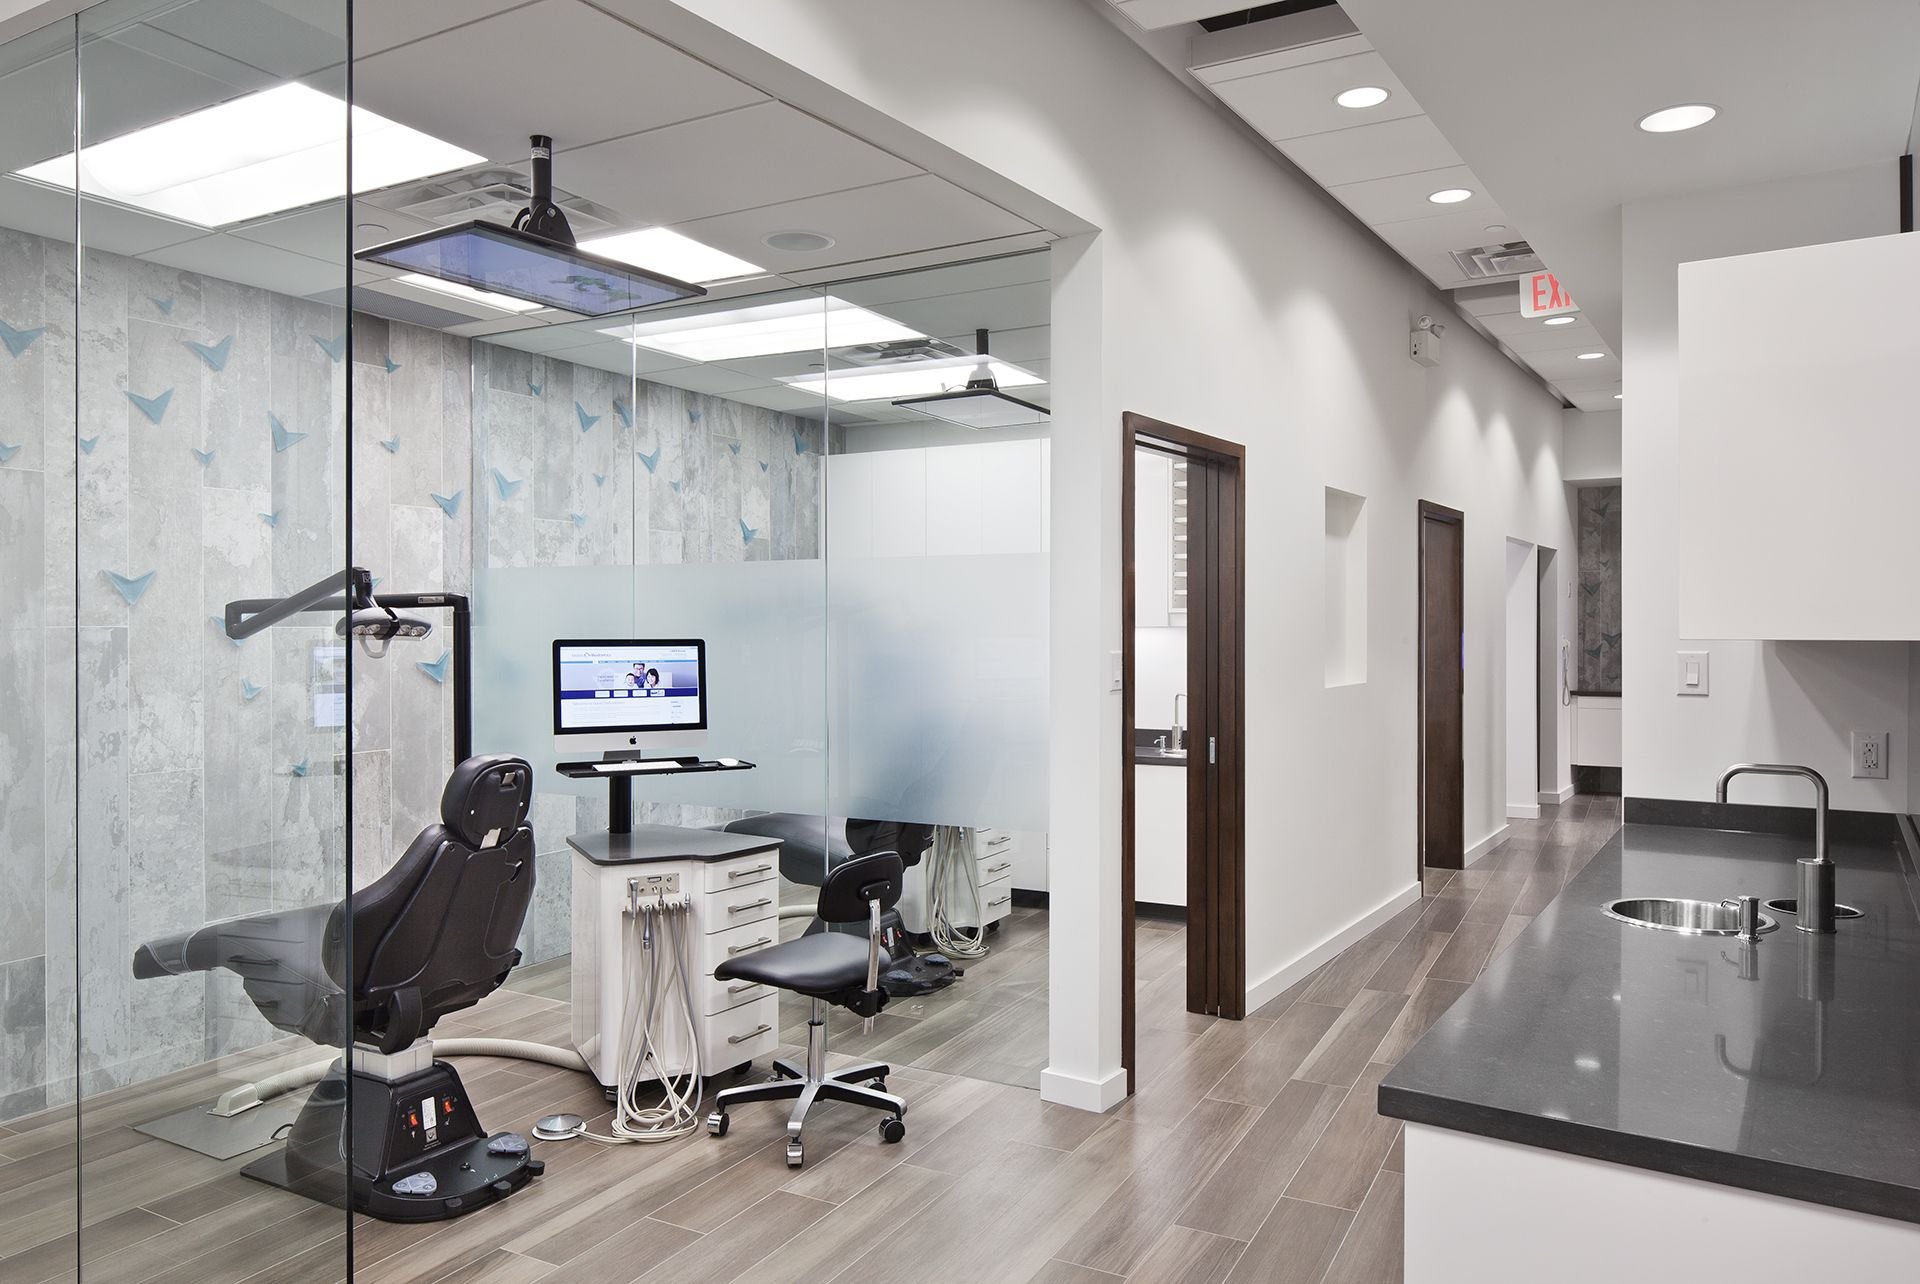 Tasios Orthodontics - Treatment Hall